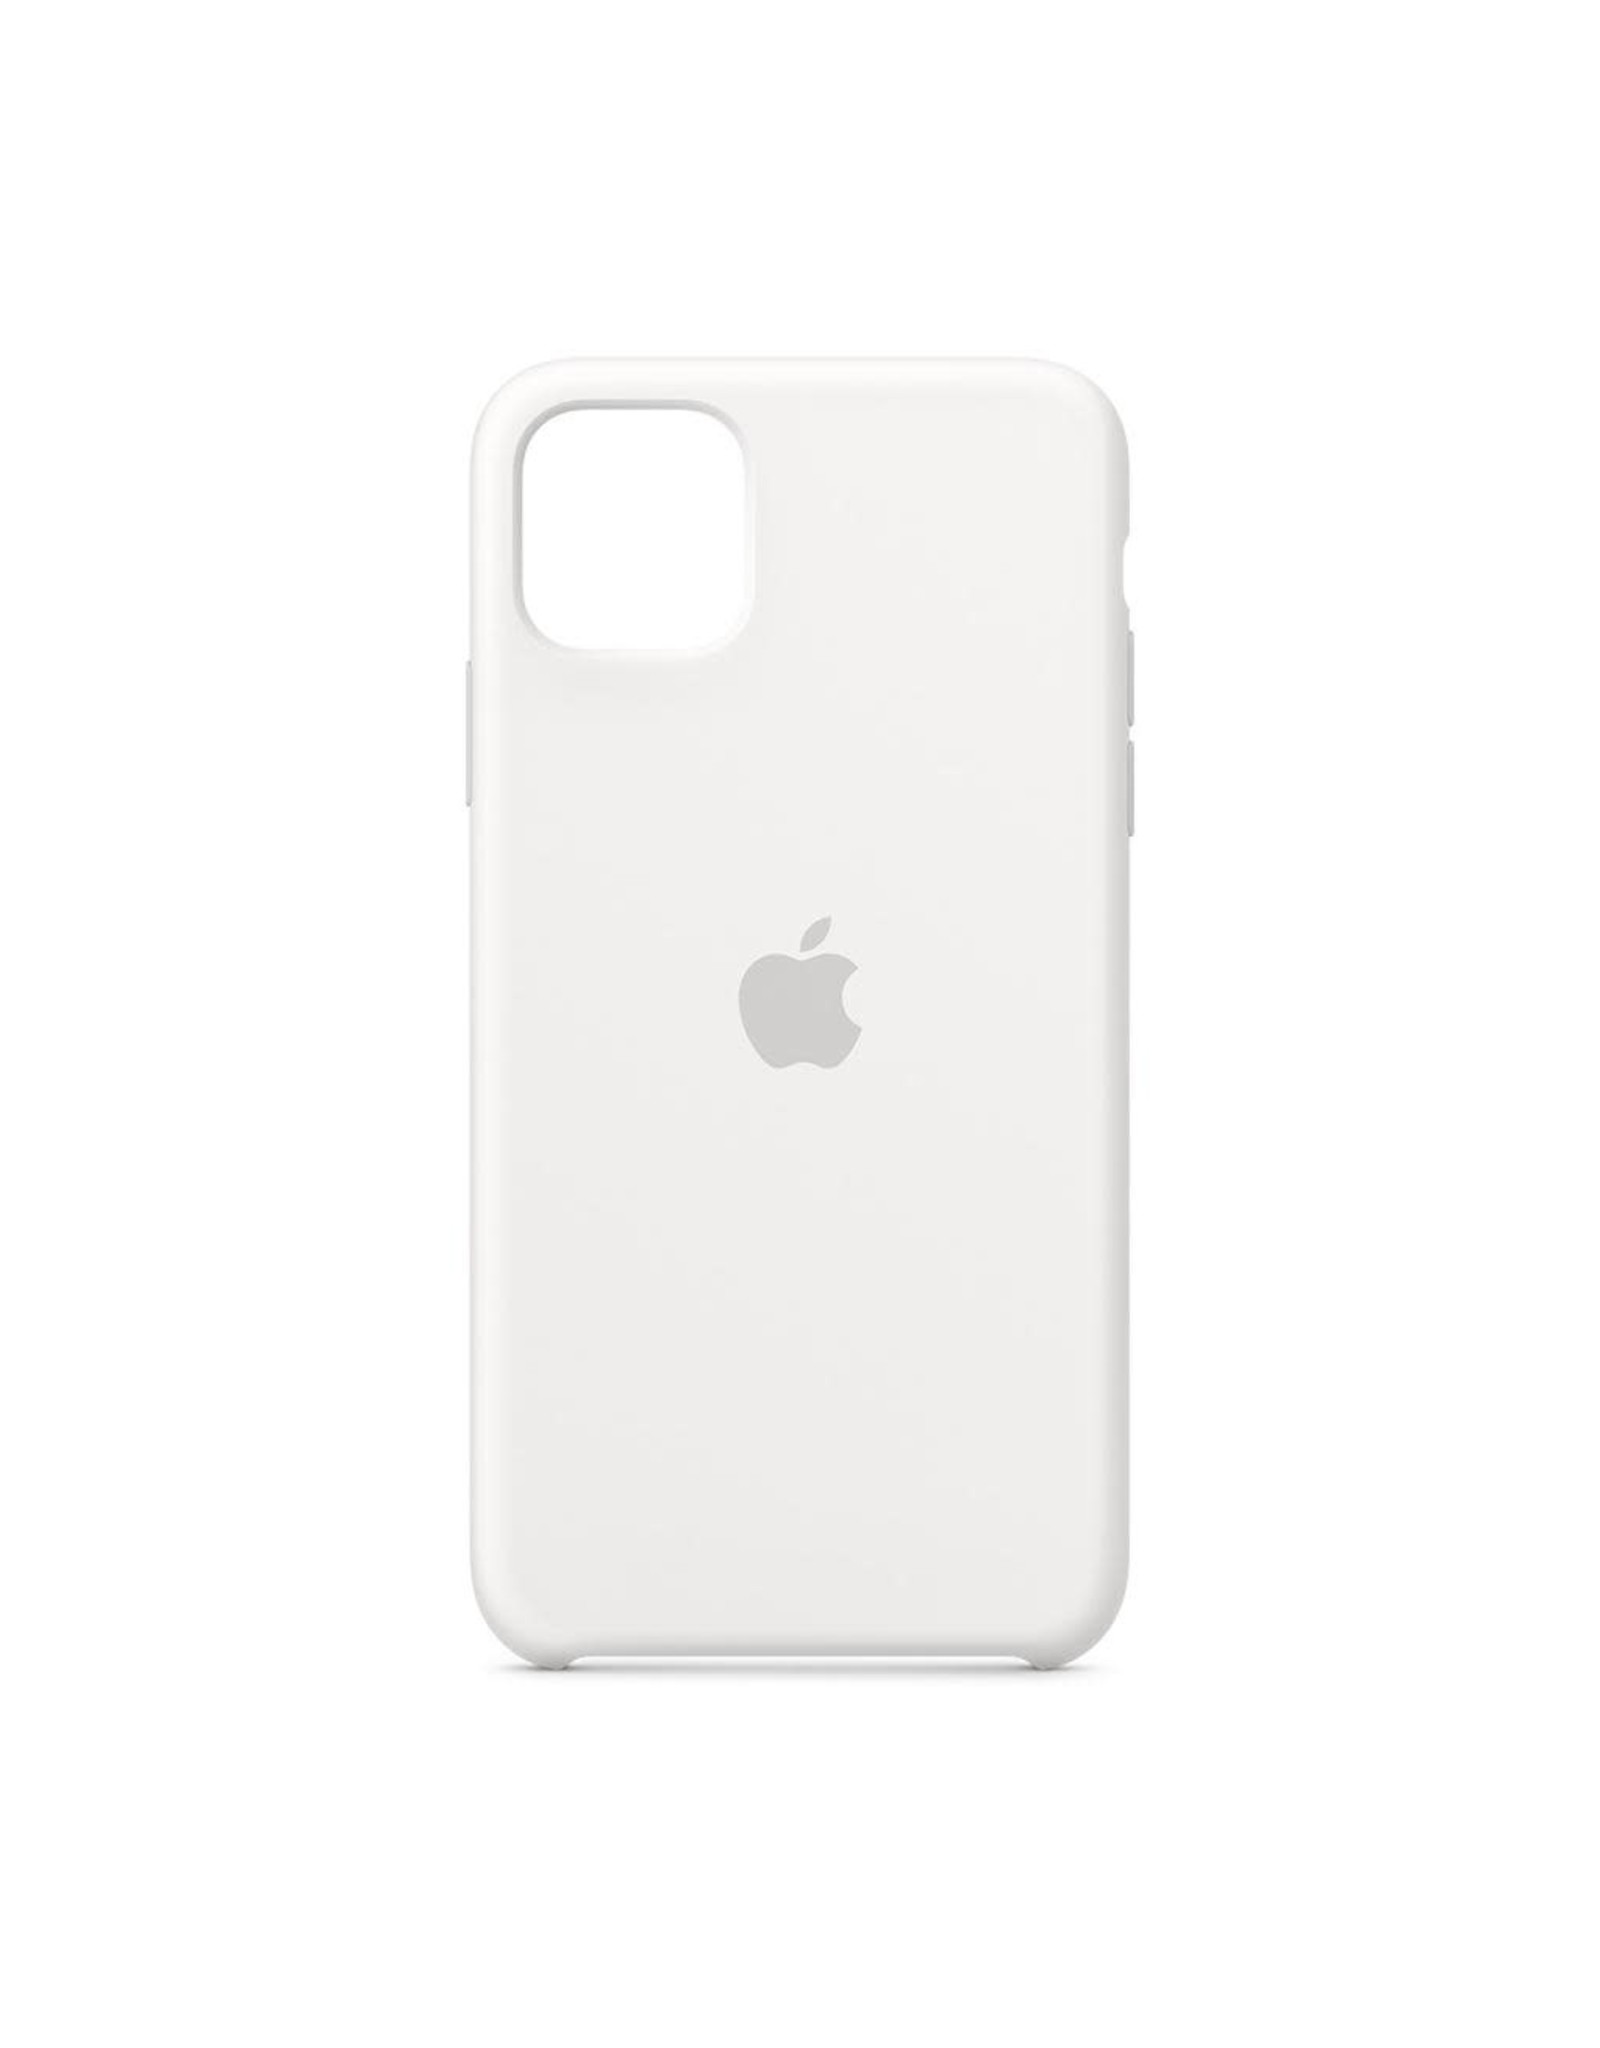 Apple Apple iPhone 11 Pro Max Silicone Case - WHITE